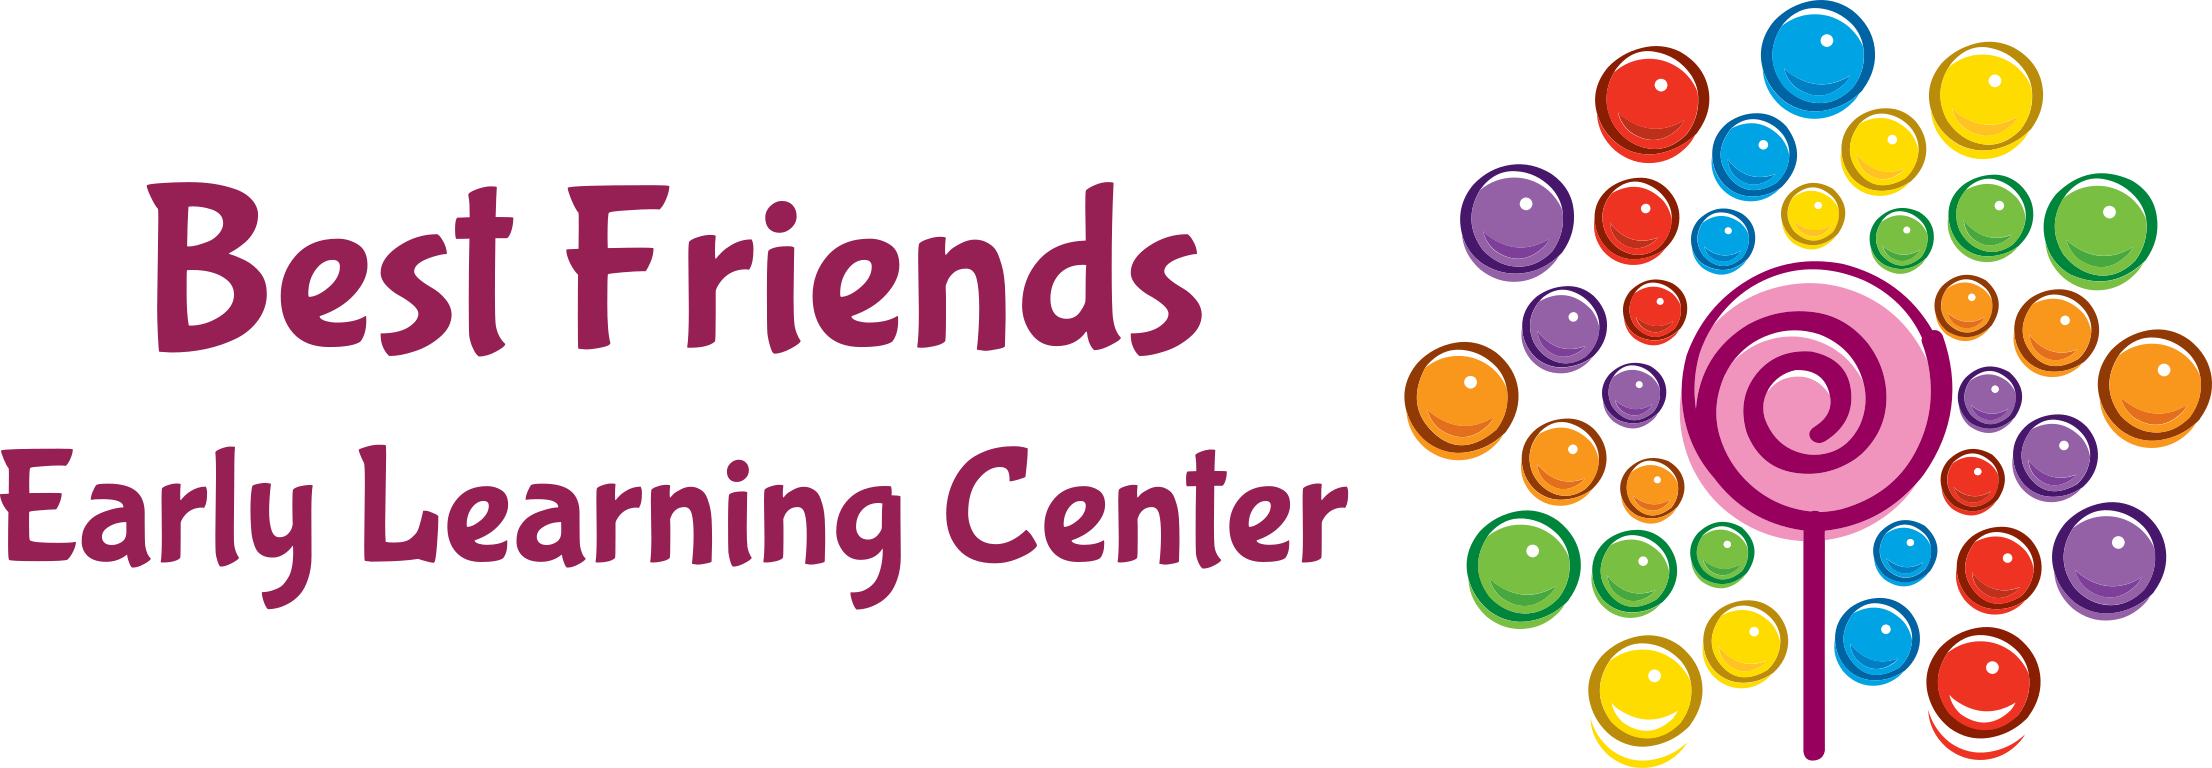 Best Friends Early Learning Center